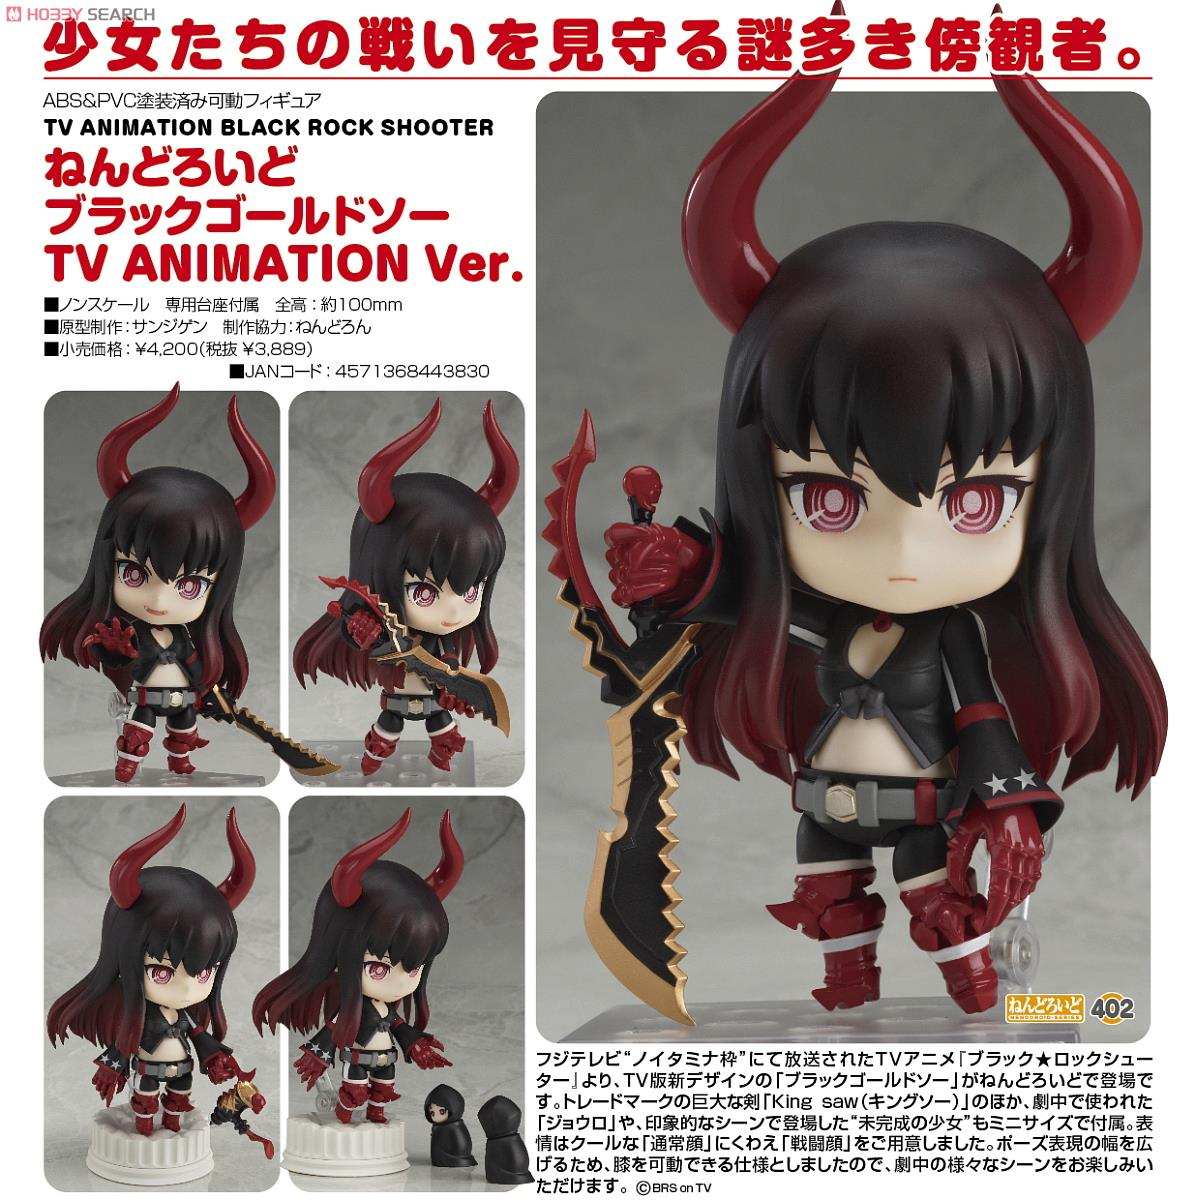 Nendoroid Black Gold Saw: TV ANIMATION Ver. [Black Rock Shooter]